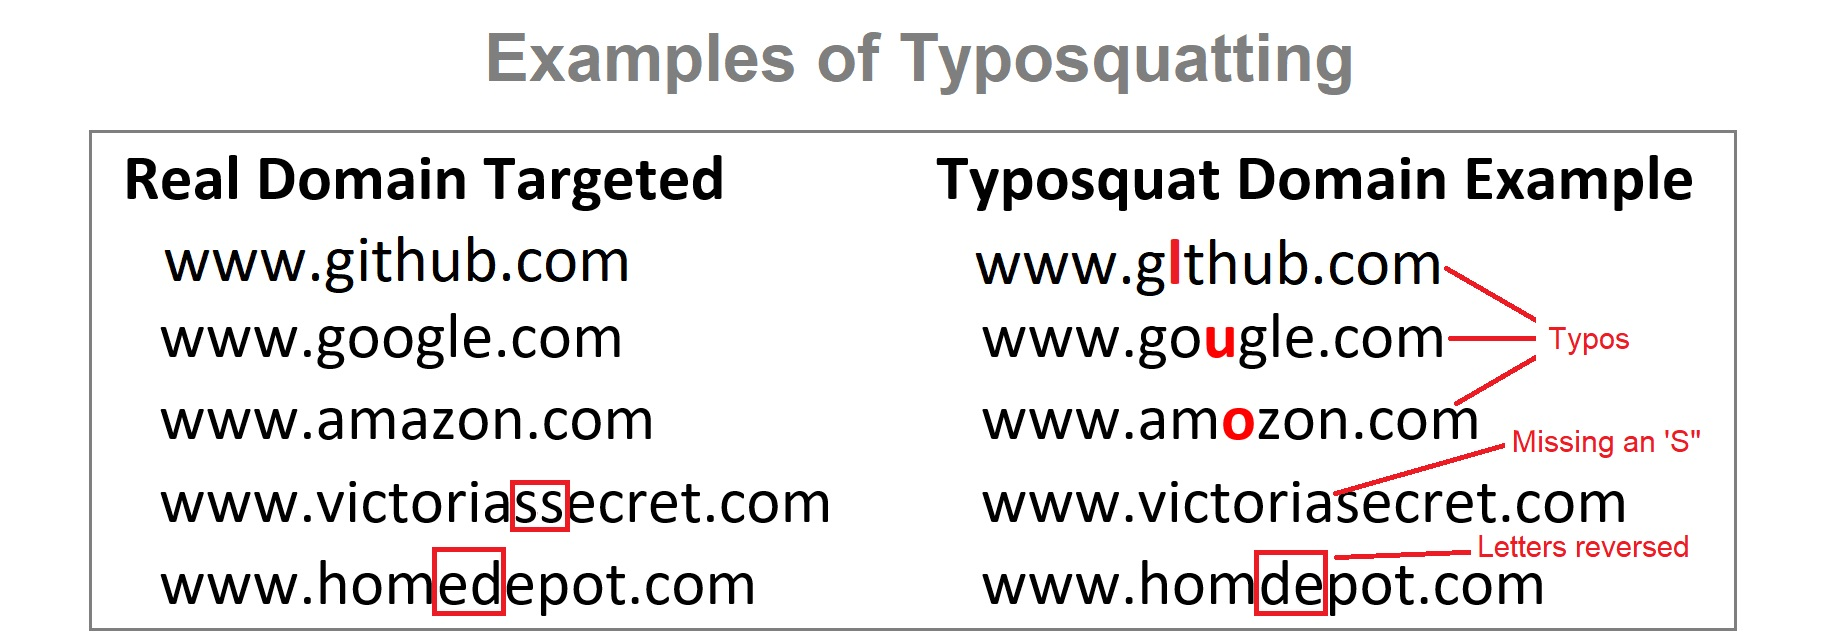 Examples of typosquatting